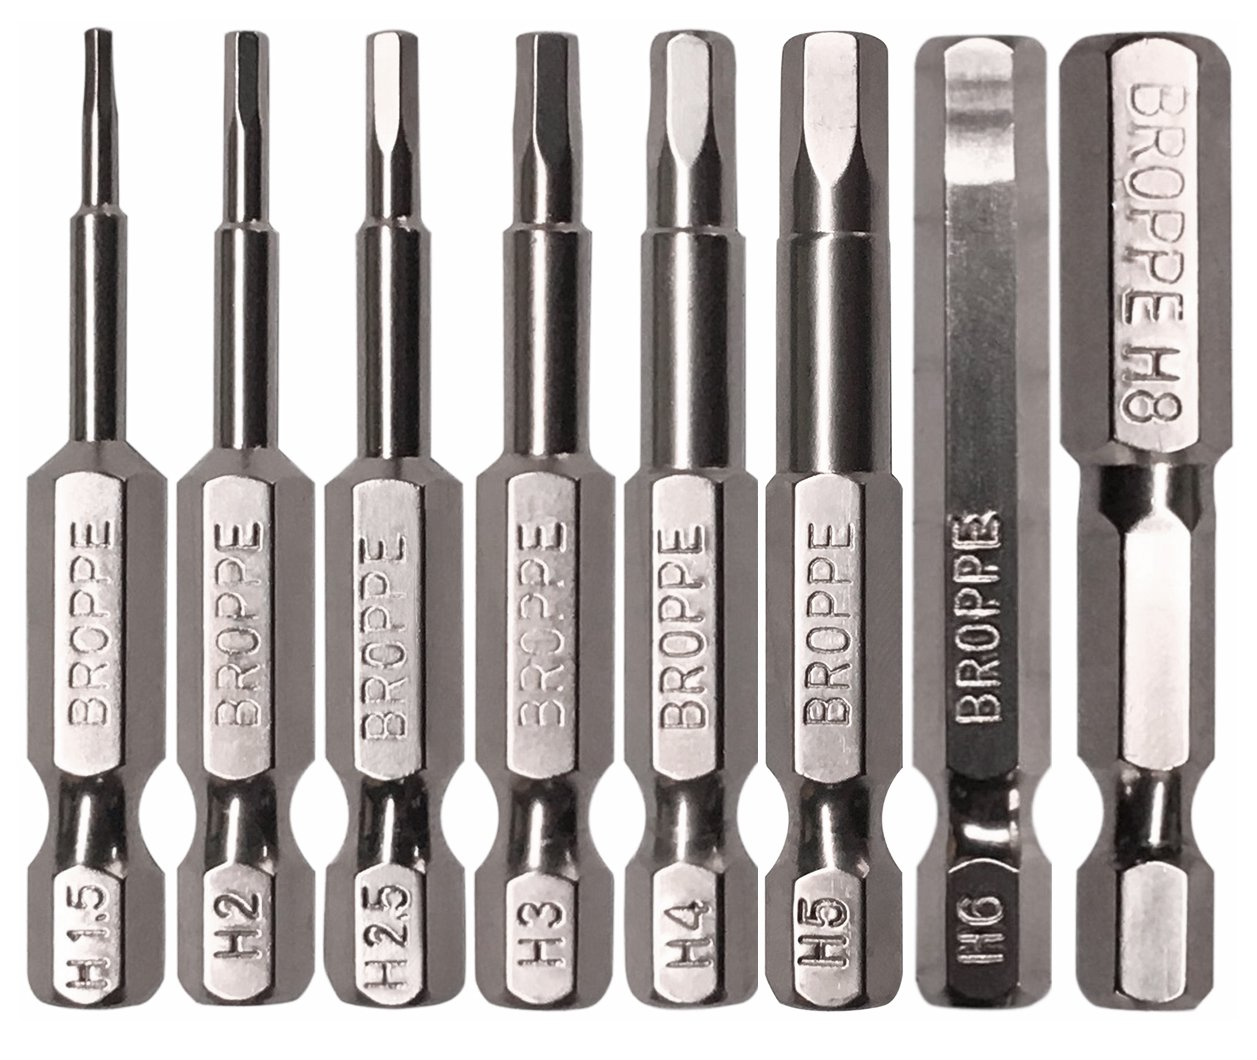 Hex Drill Screwdriver Bit 8 Pcs Shank Magnetic Hexagon Screwdriving bits set 1/4'' Hex Shank, 2 Inch Length